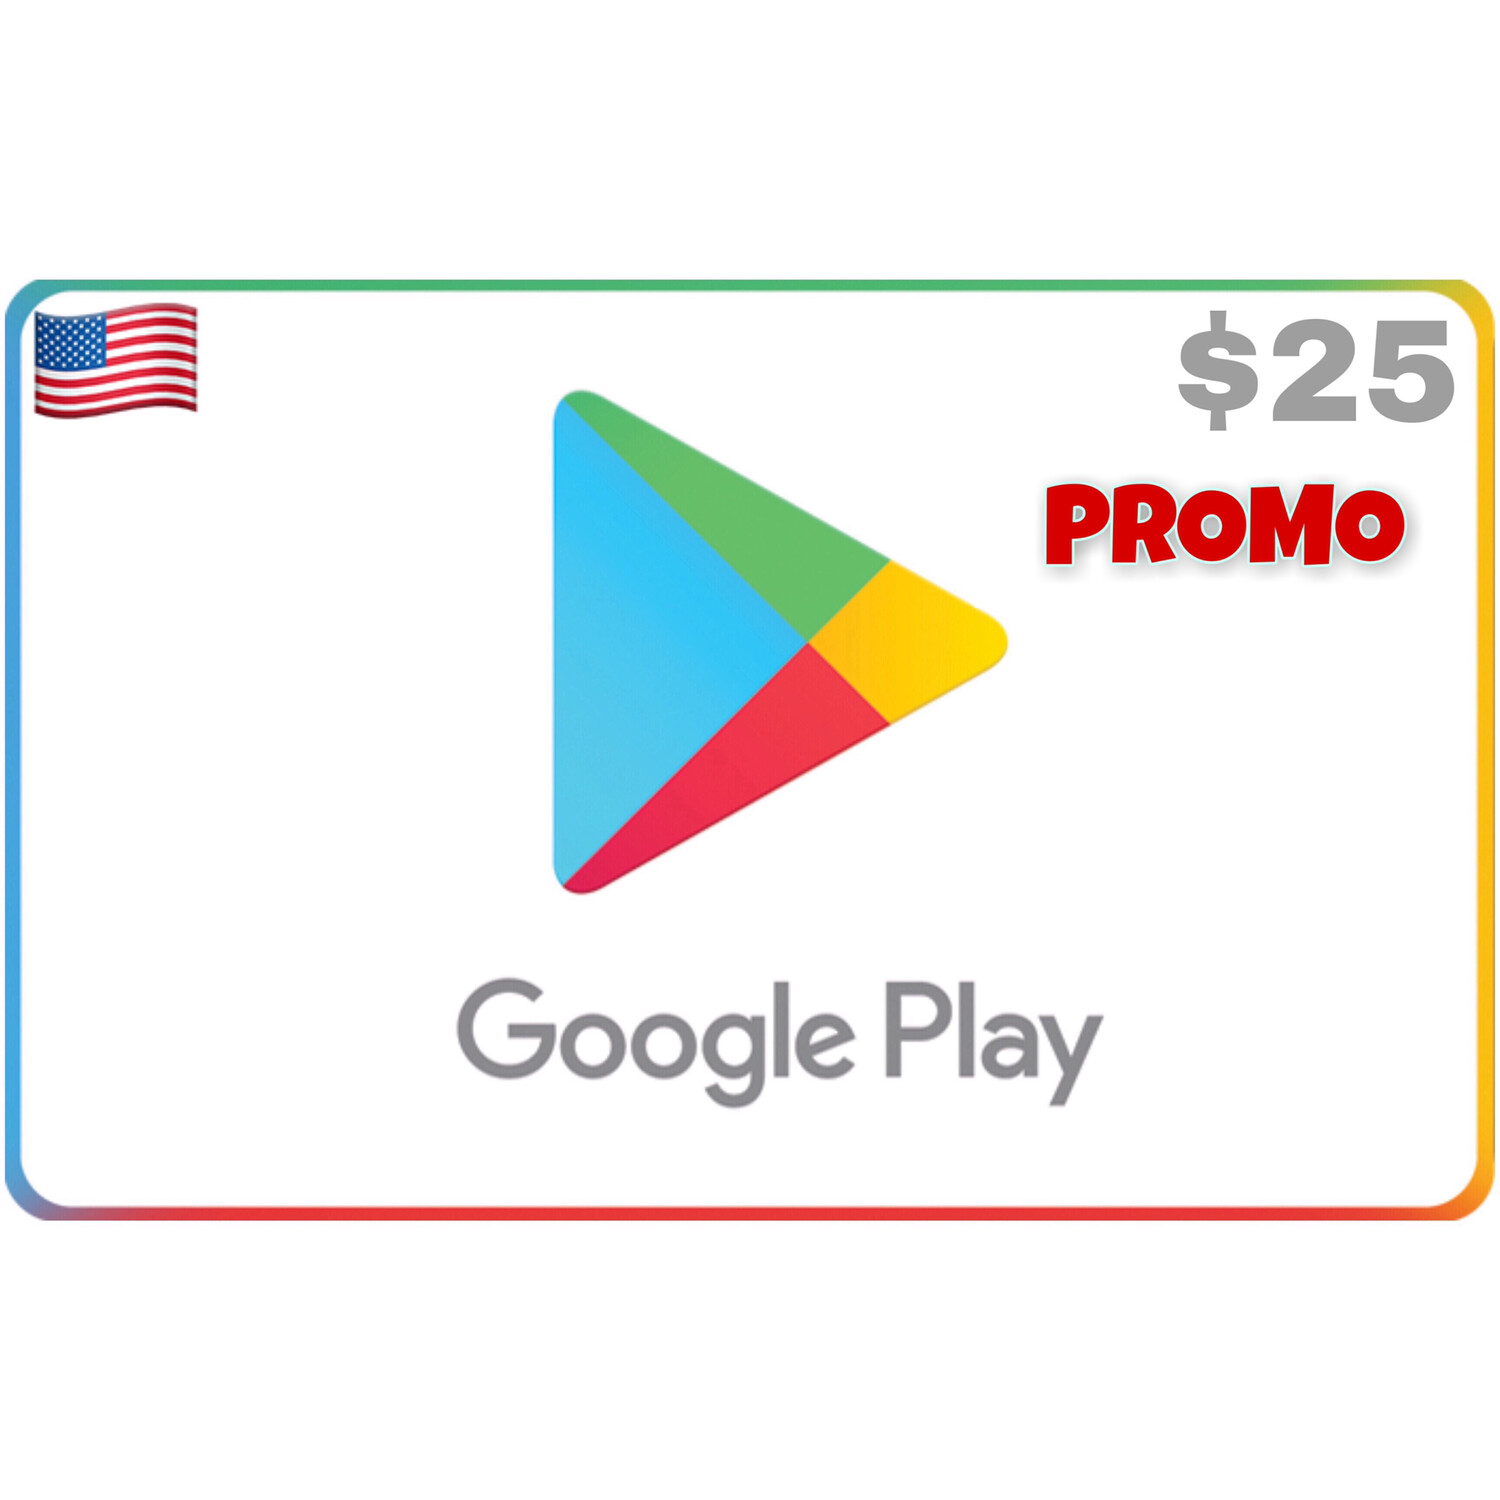 Promo Google Play USA $25 (Web Order Only)